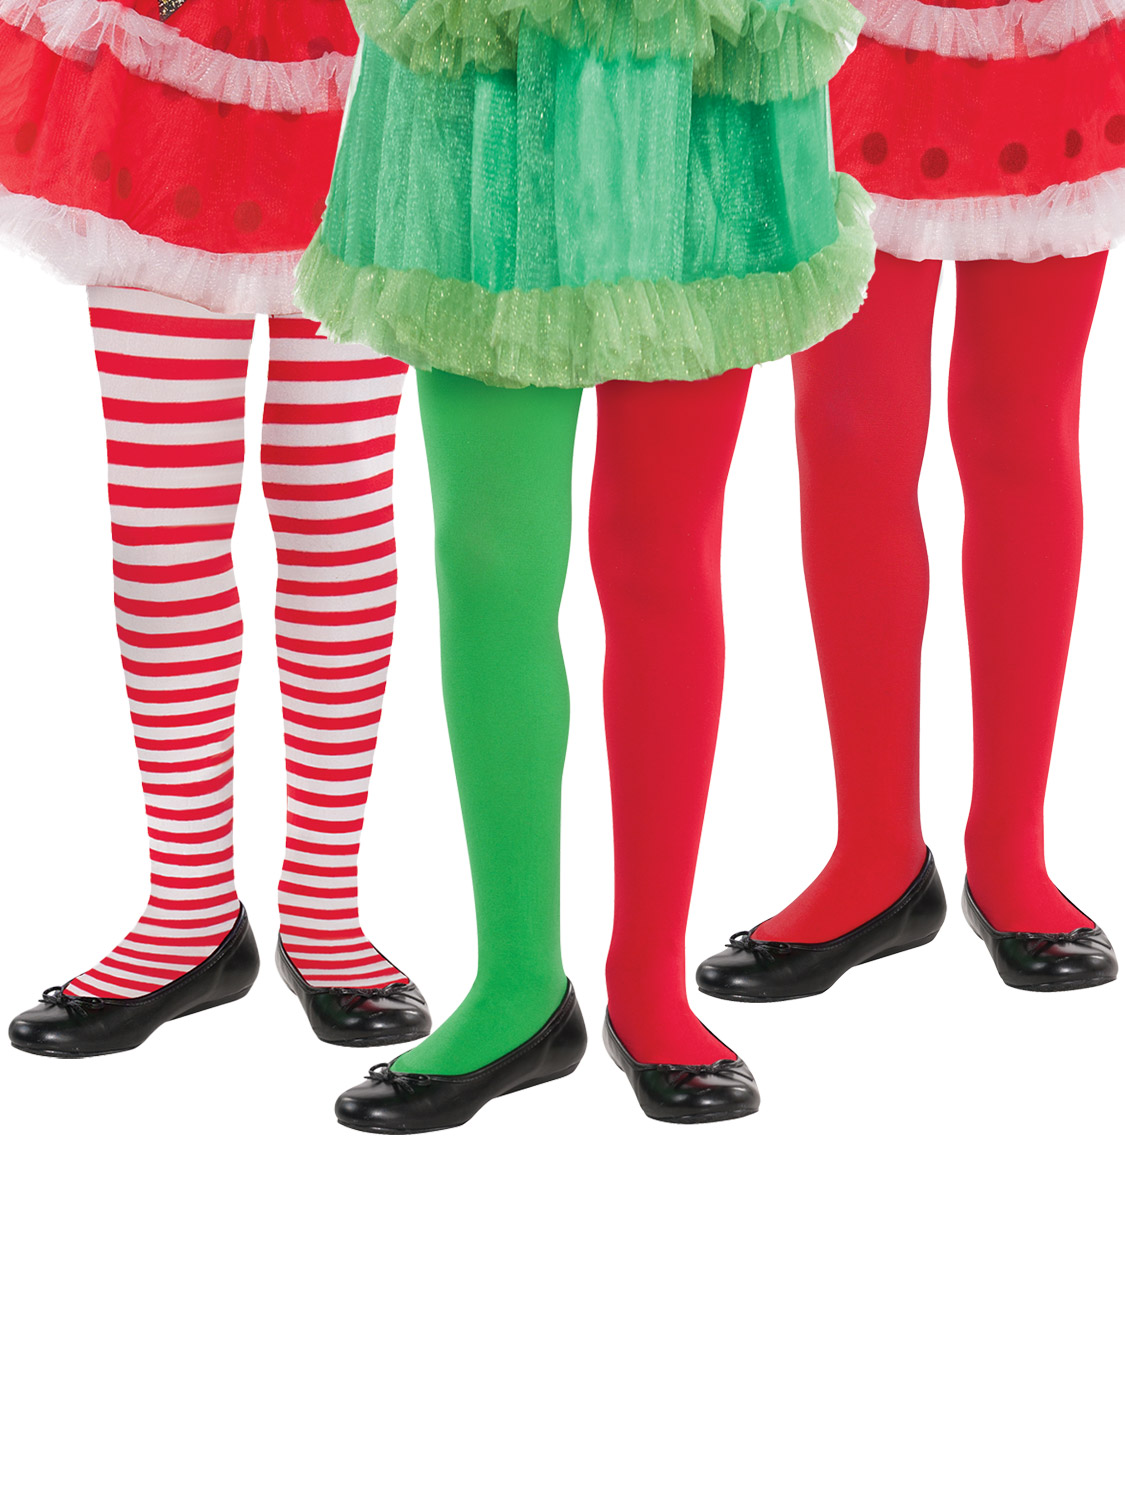 e888a72686964a Details about Girls Christmas Tights Childs Elf Santa Claus Fancy Dress  Accessory Hosiery Kids